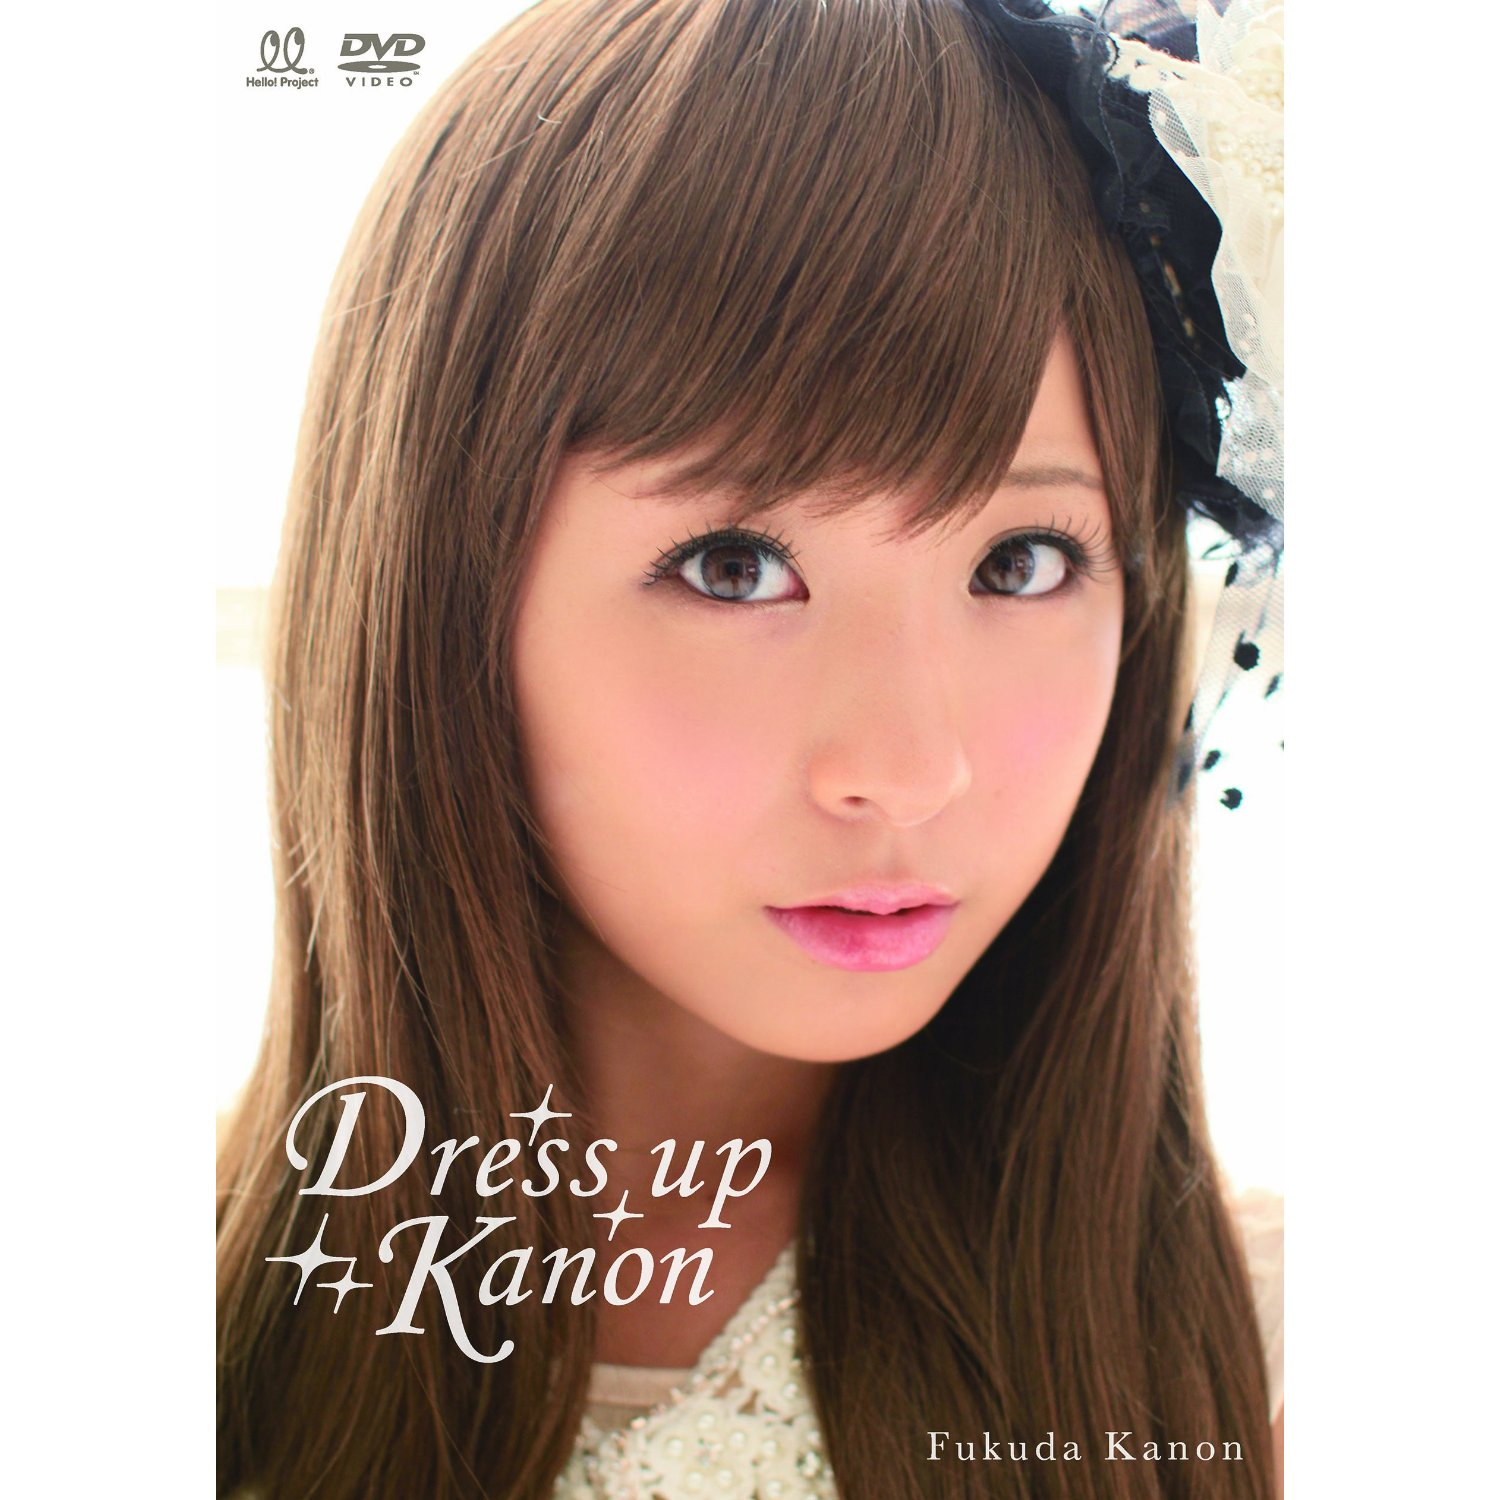 Dress up kanon